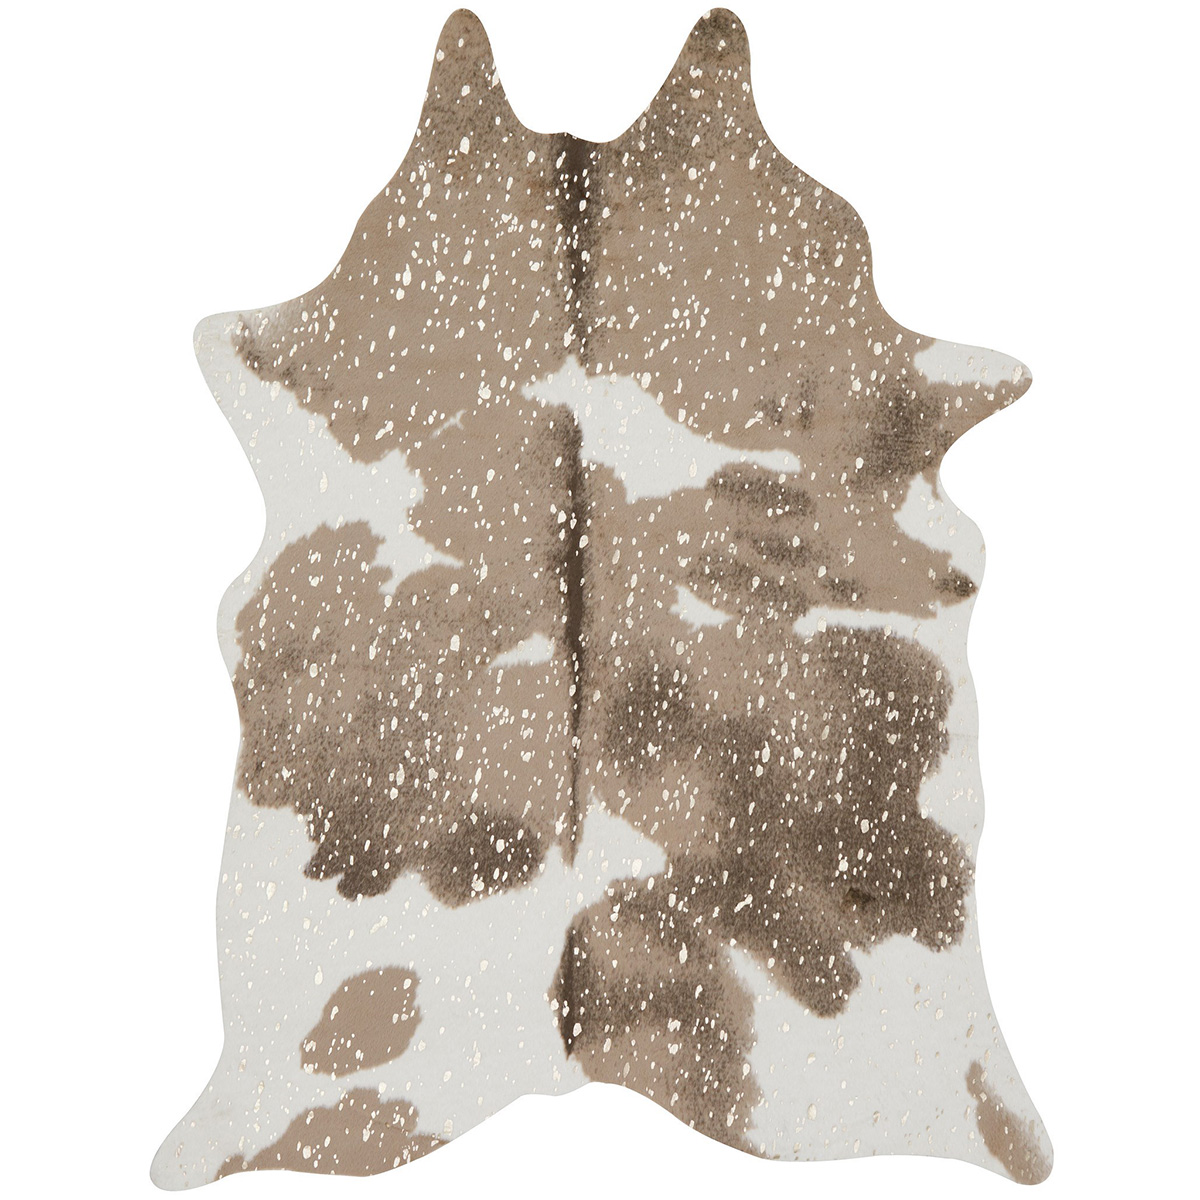 Metallic Taupe and White Faux Cowhide Rug - 6 x 8